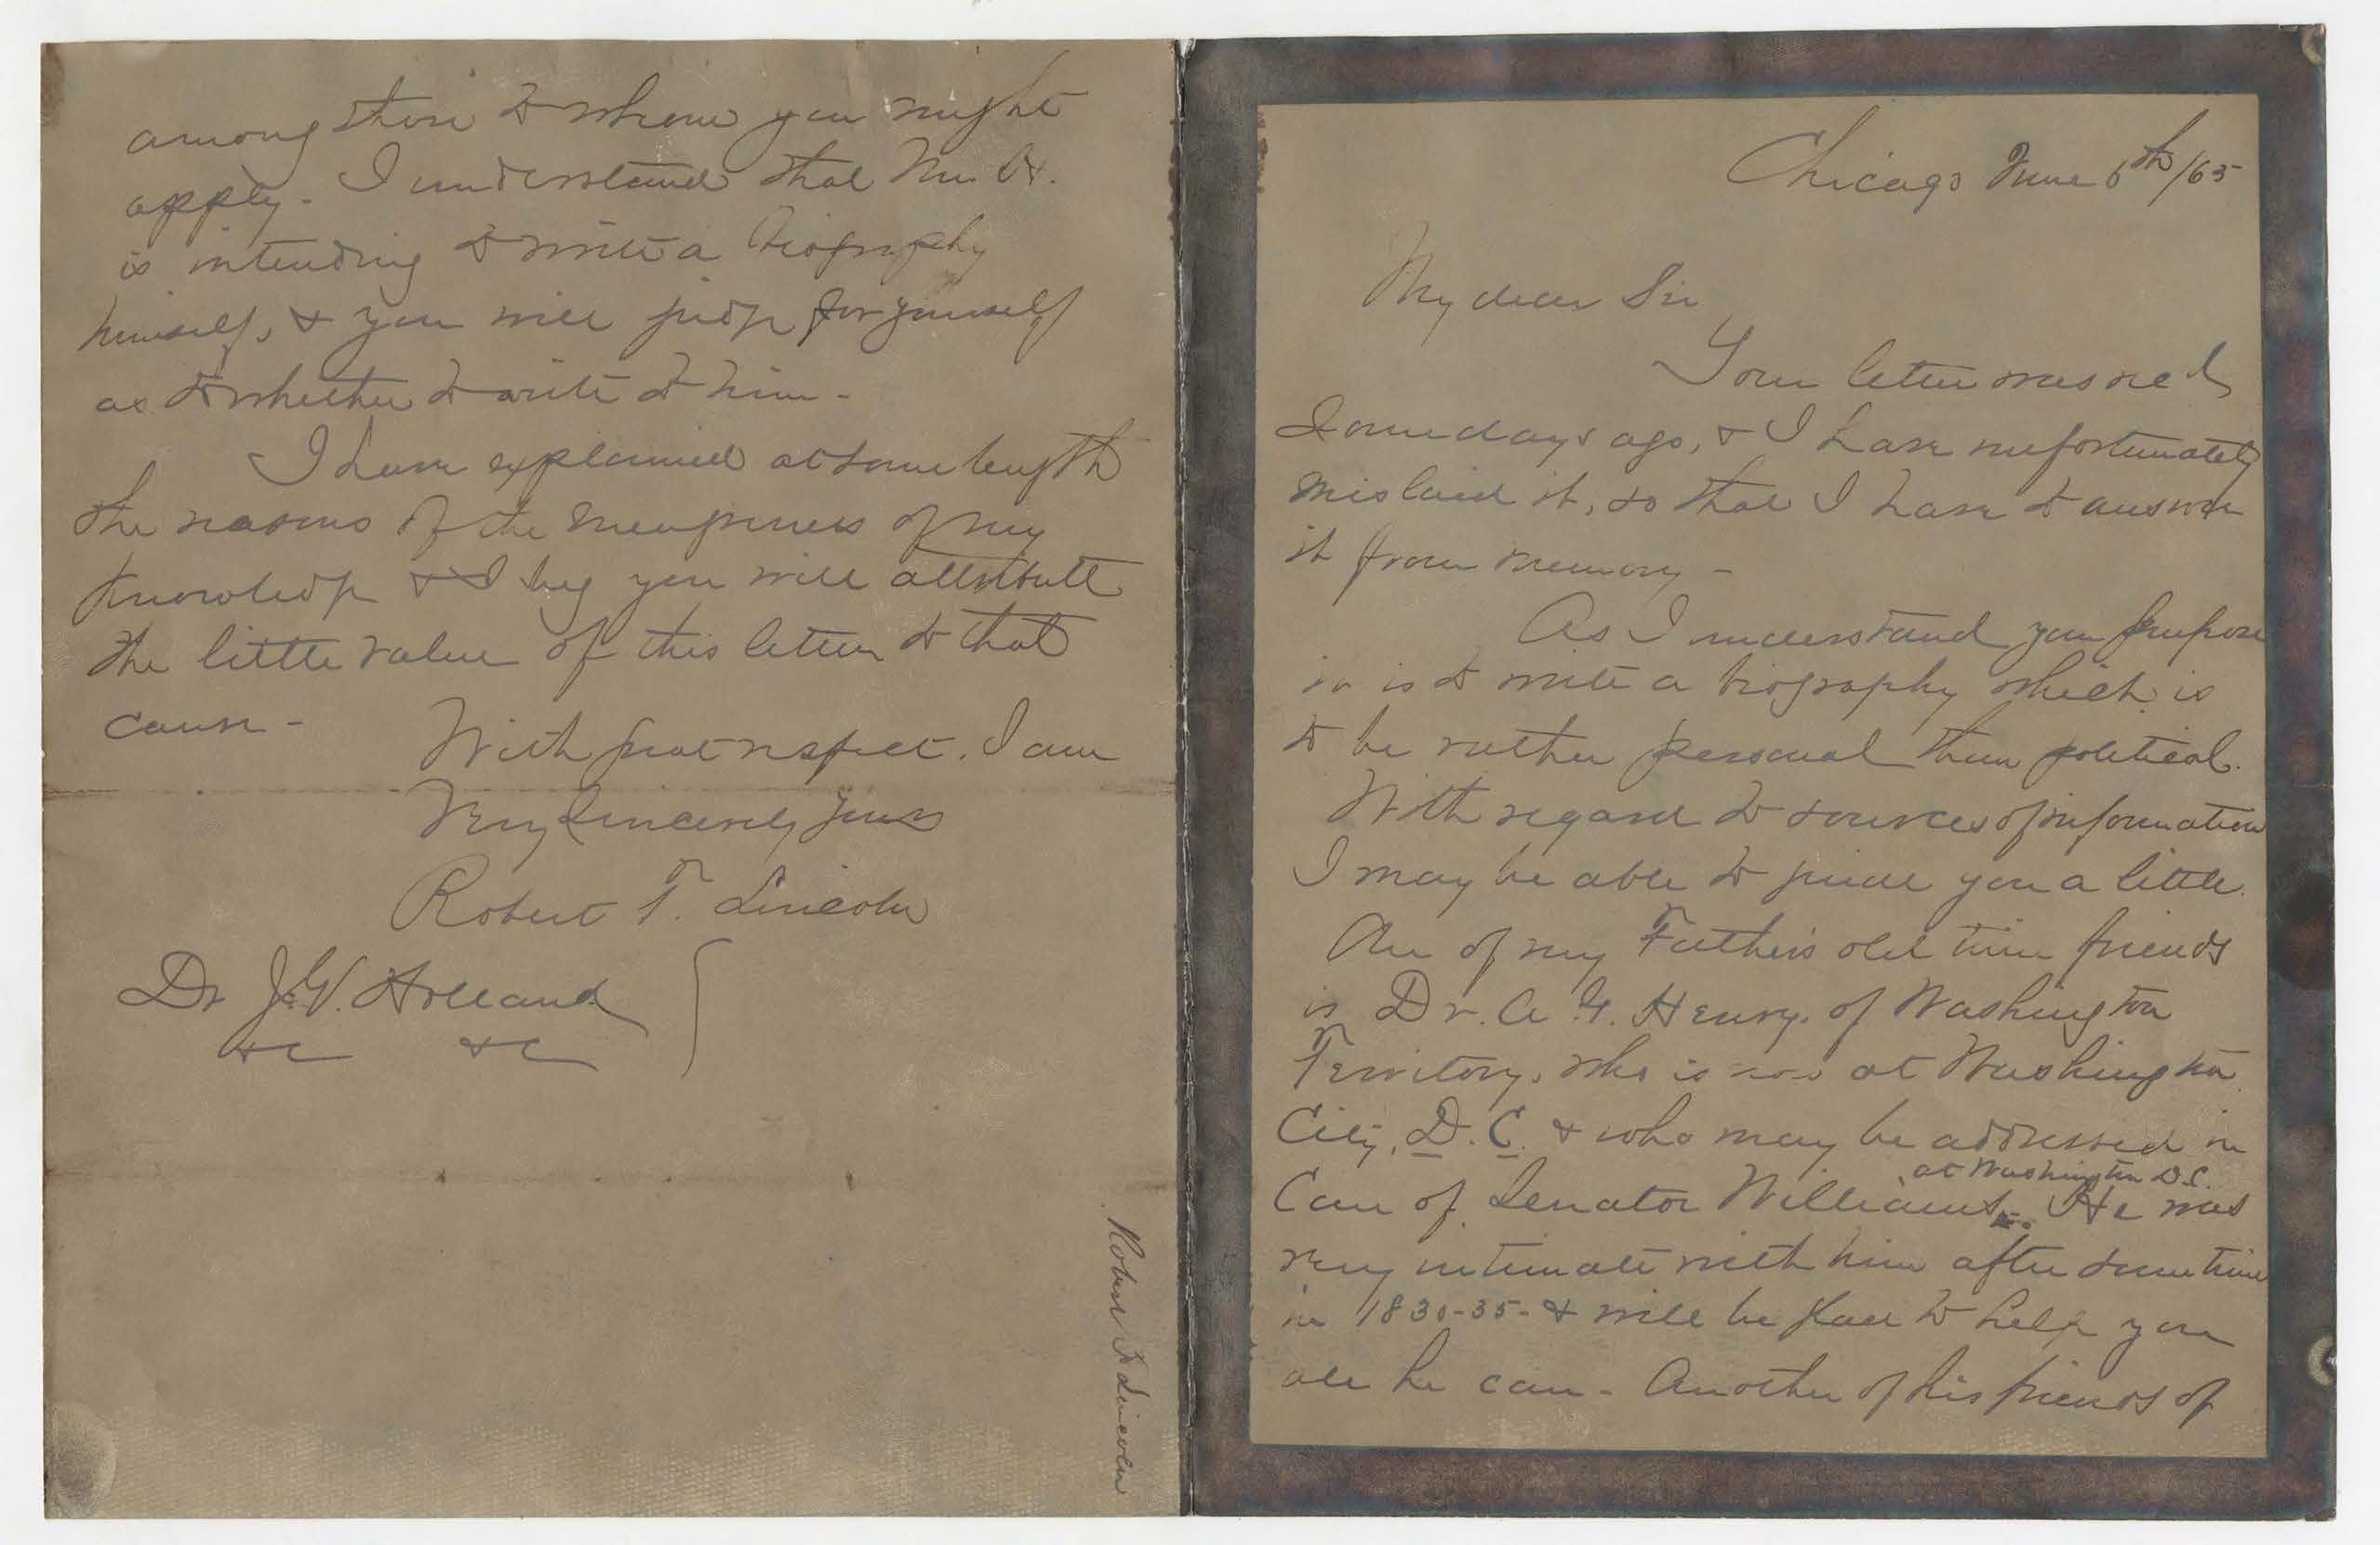 A letter from Robert Todd Lincoln to Dr. Josiah G. Holland